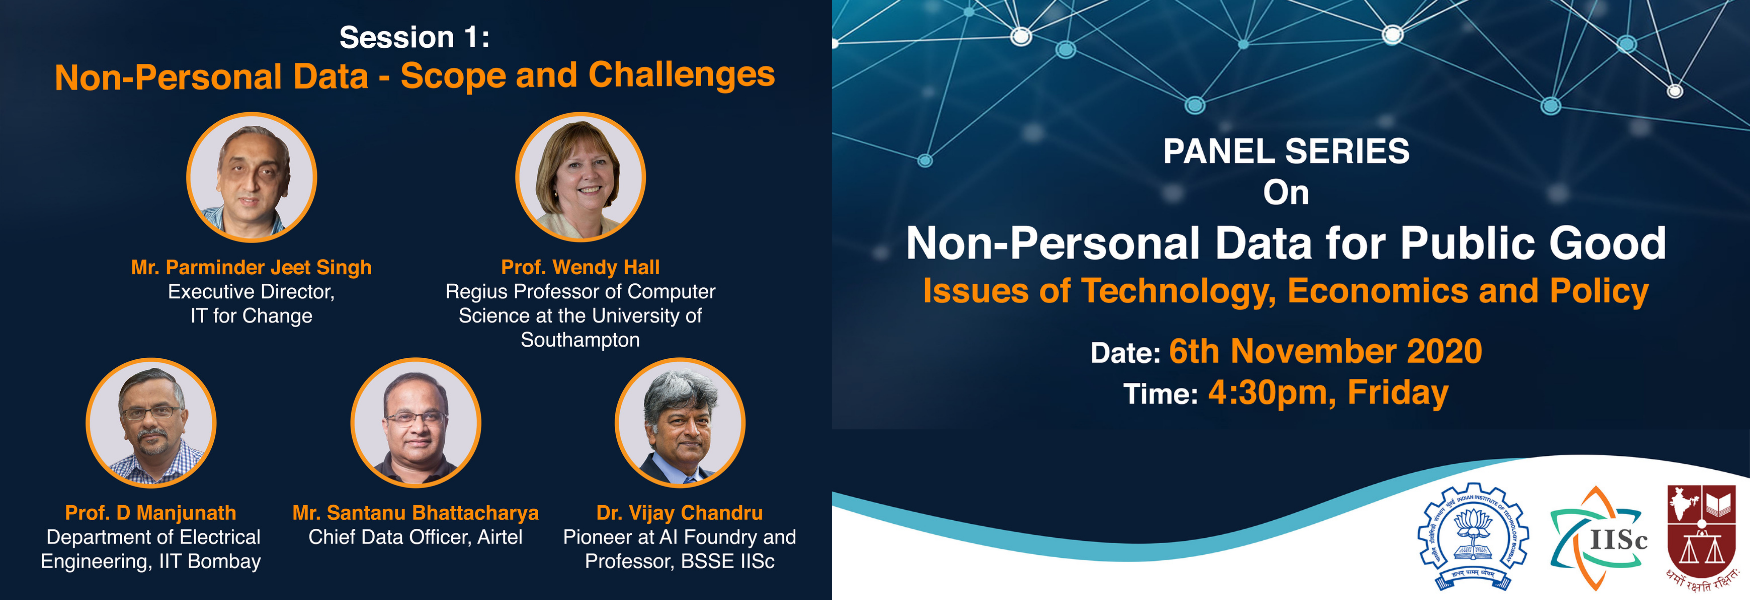 Non-Personal Data: Scope and Challenges